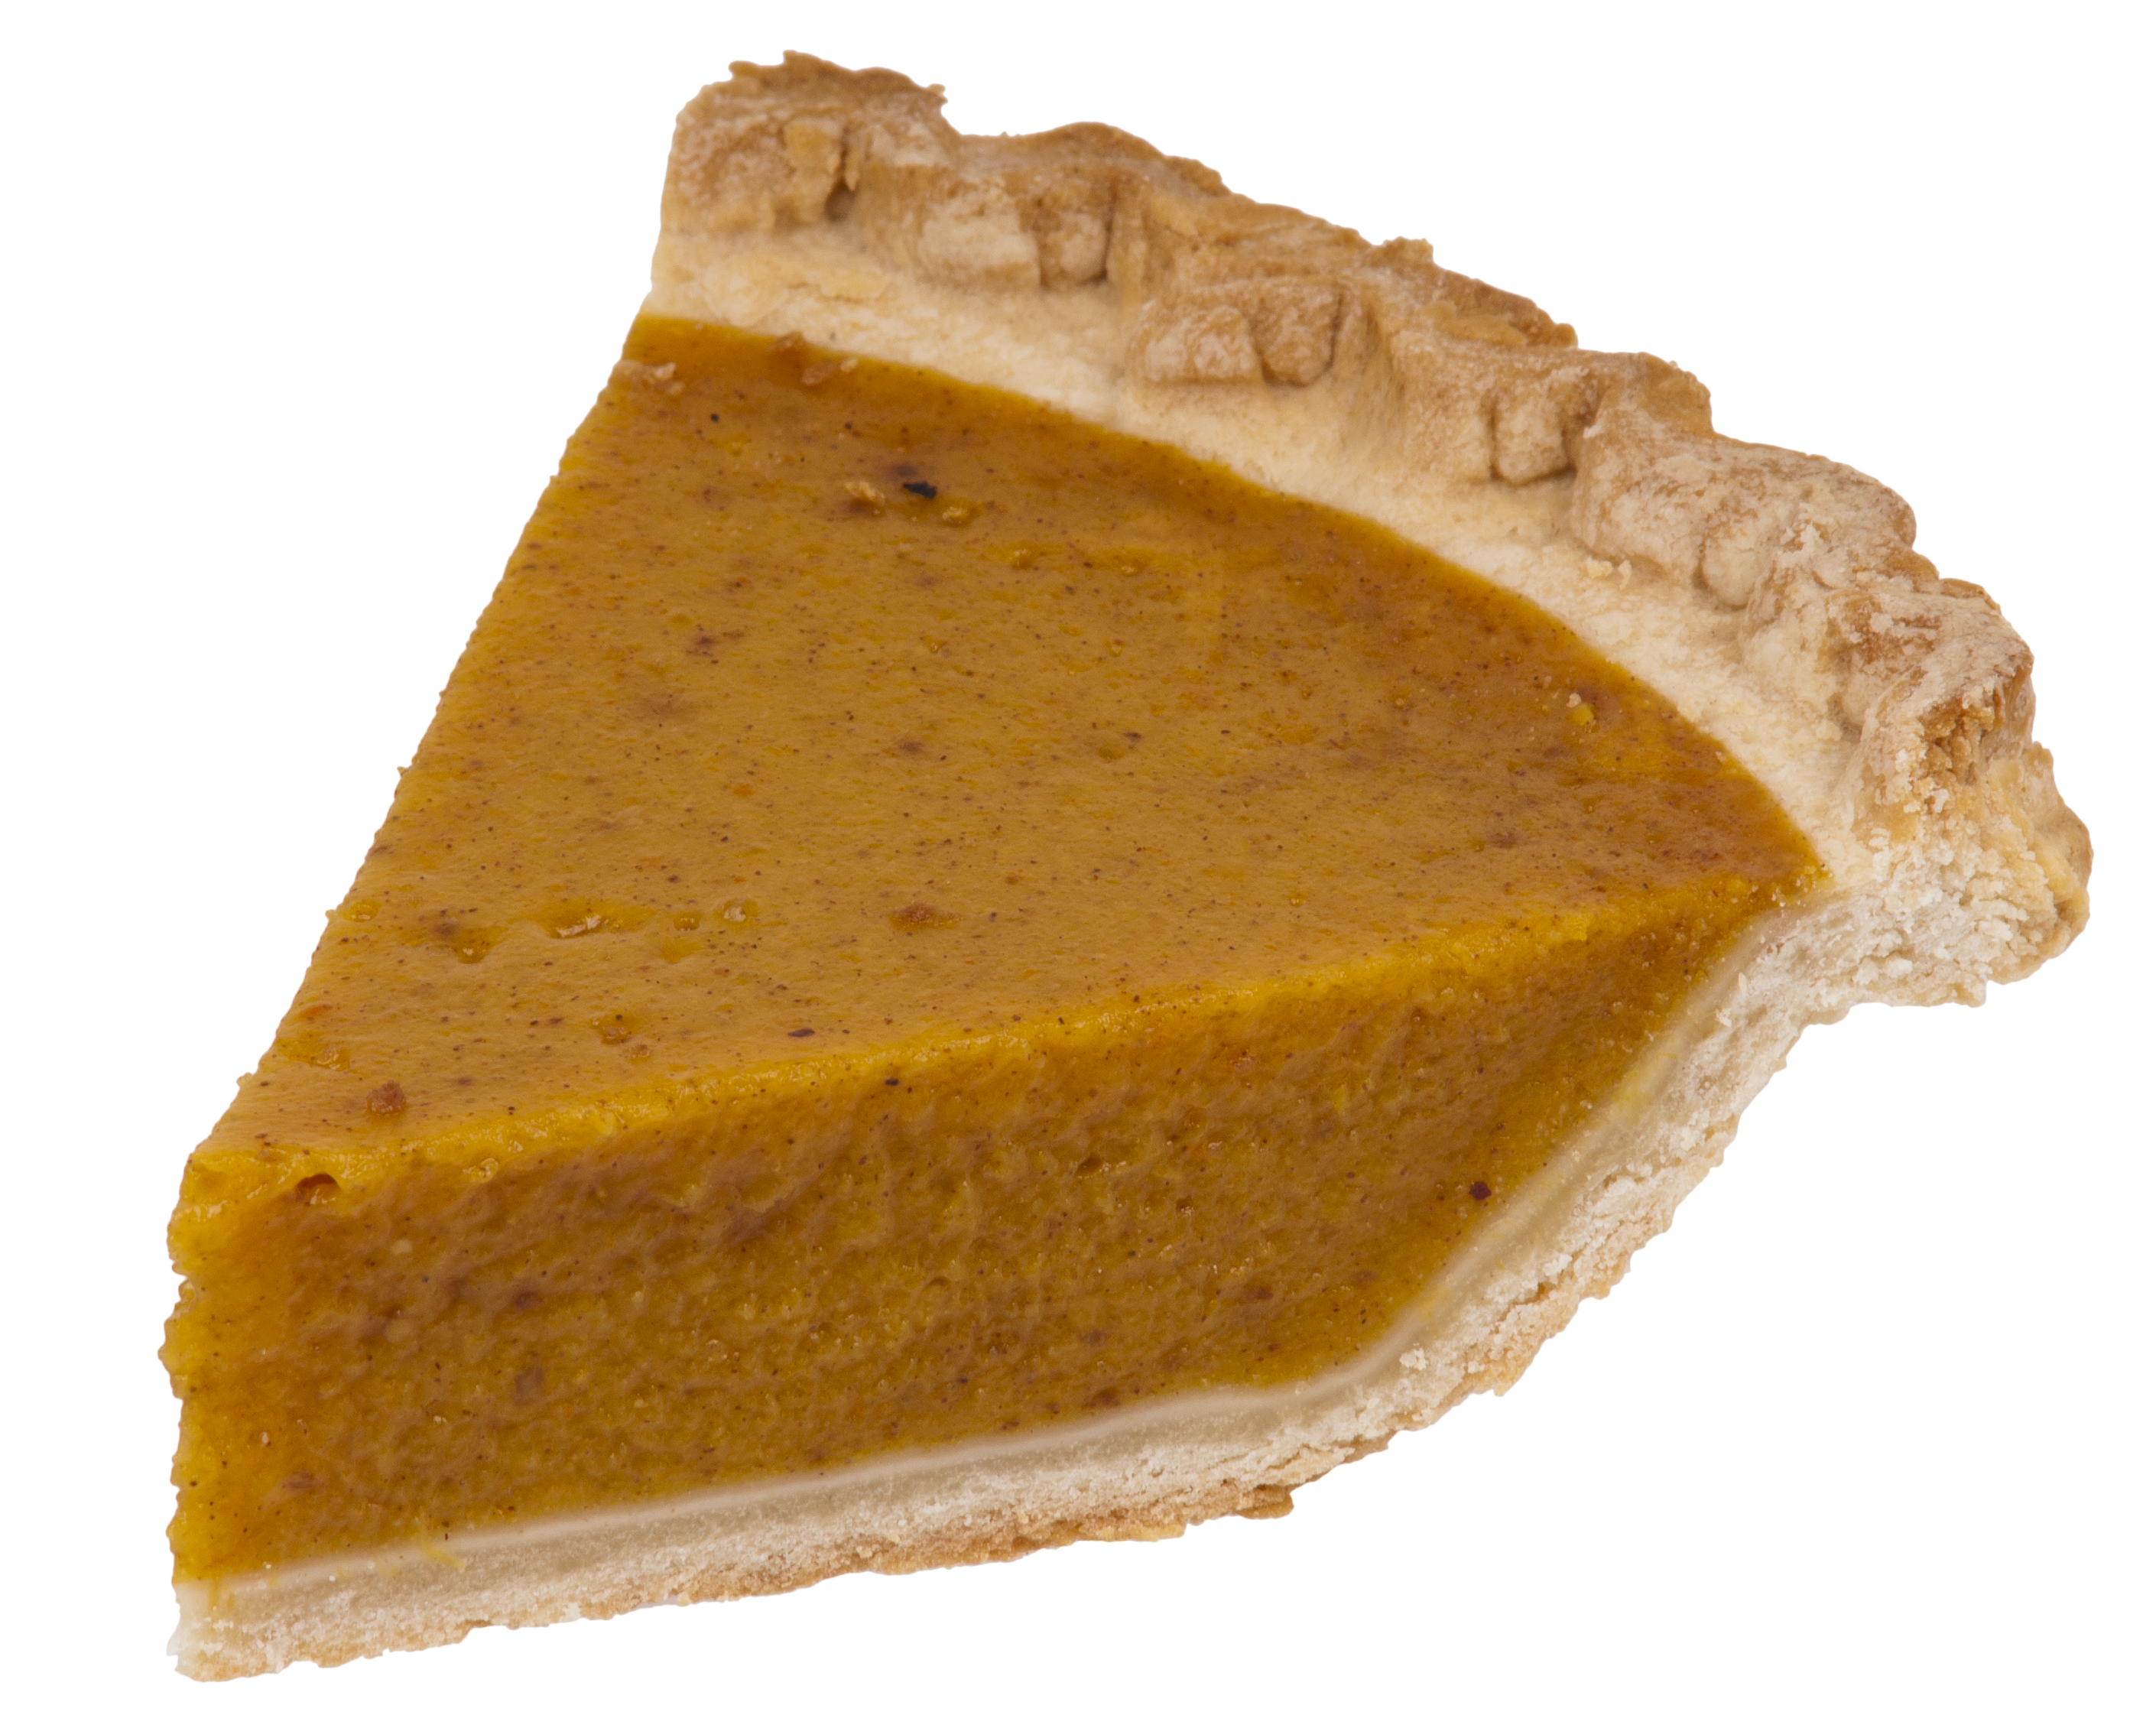 File:Pumpkin-Pie-Slice.jpg - Wikimedia Commons